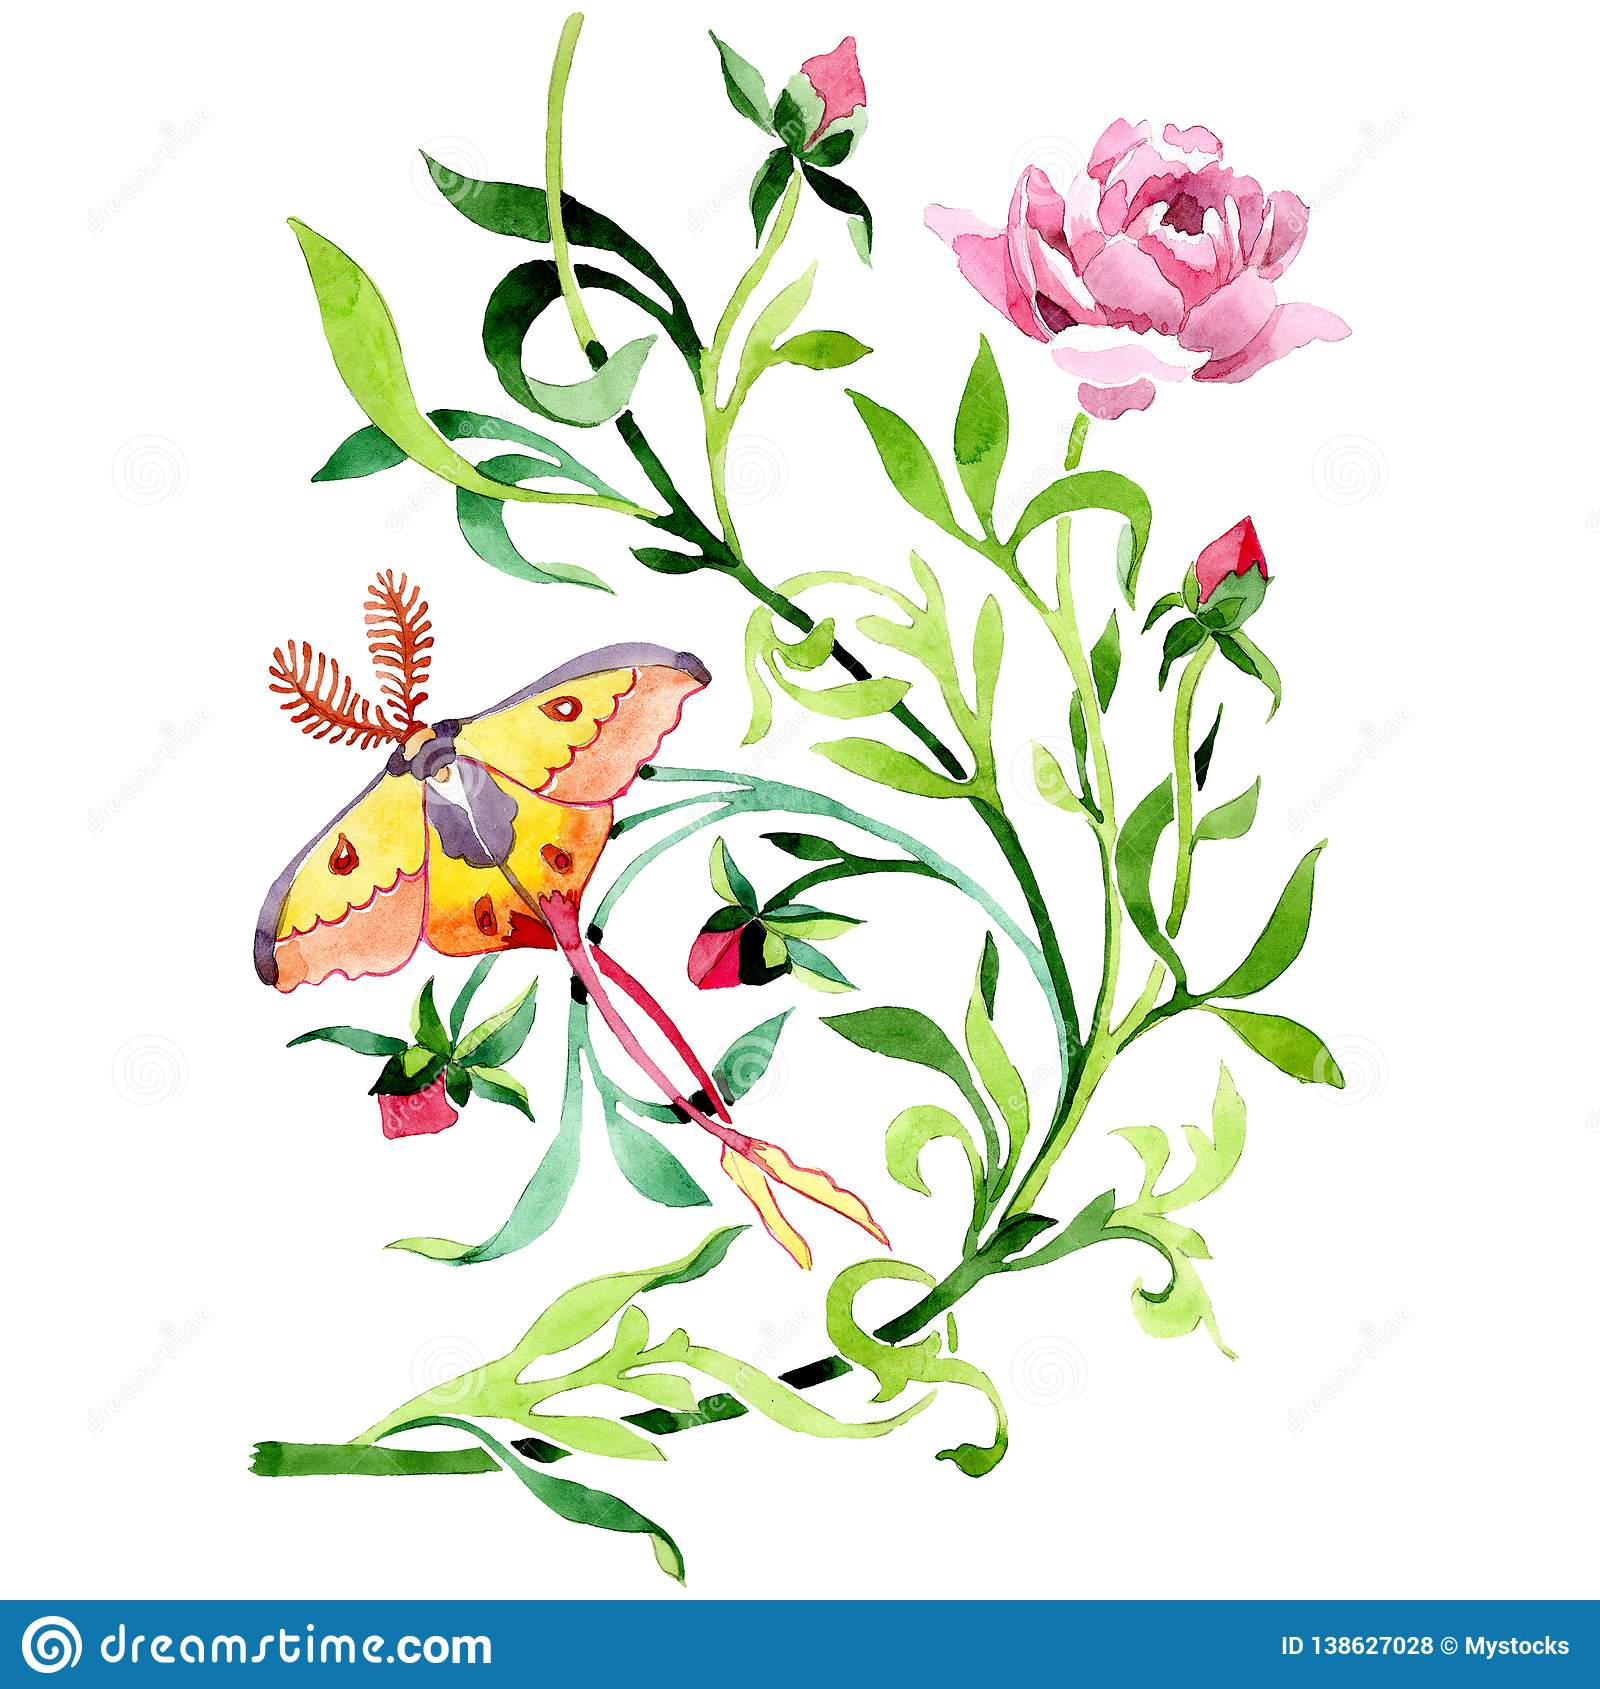 Pink peony with butterfly floral botanical flower. Watercolor background set. Isolated ornament illustration element.